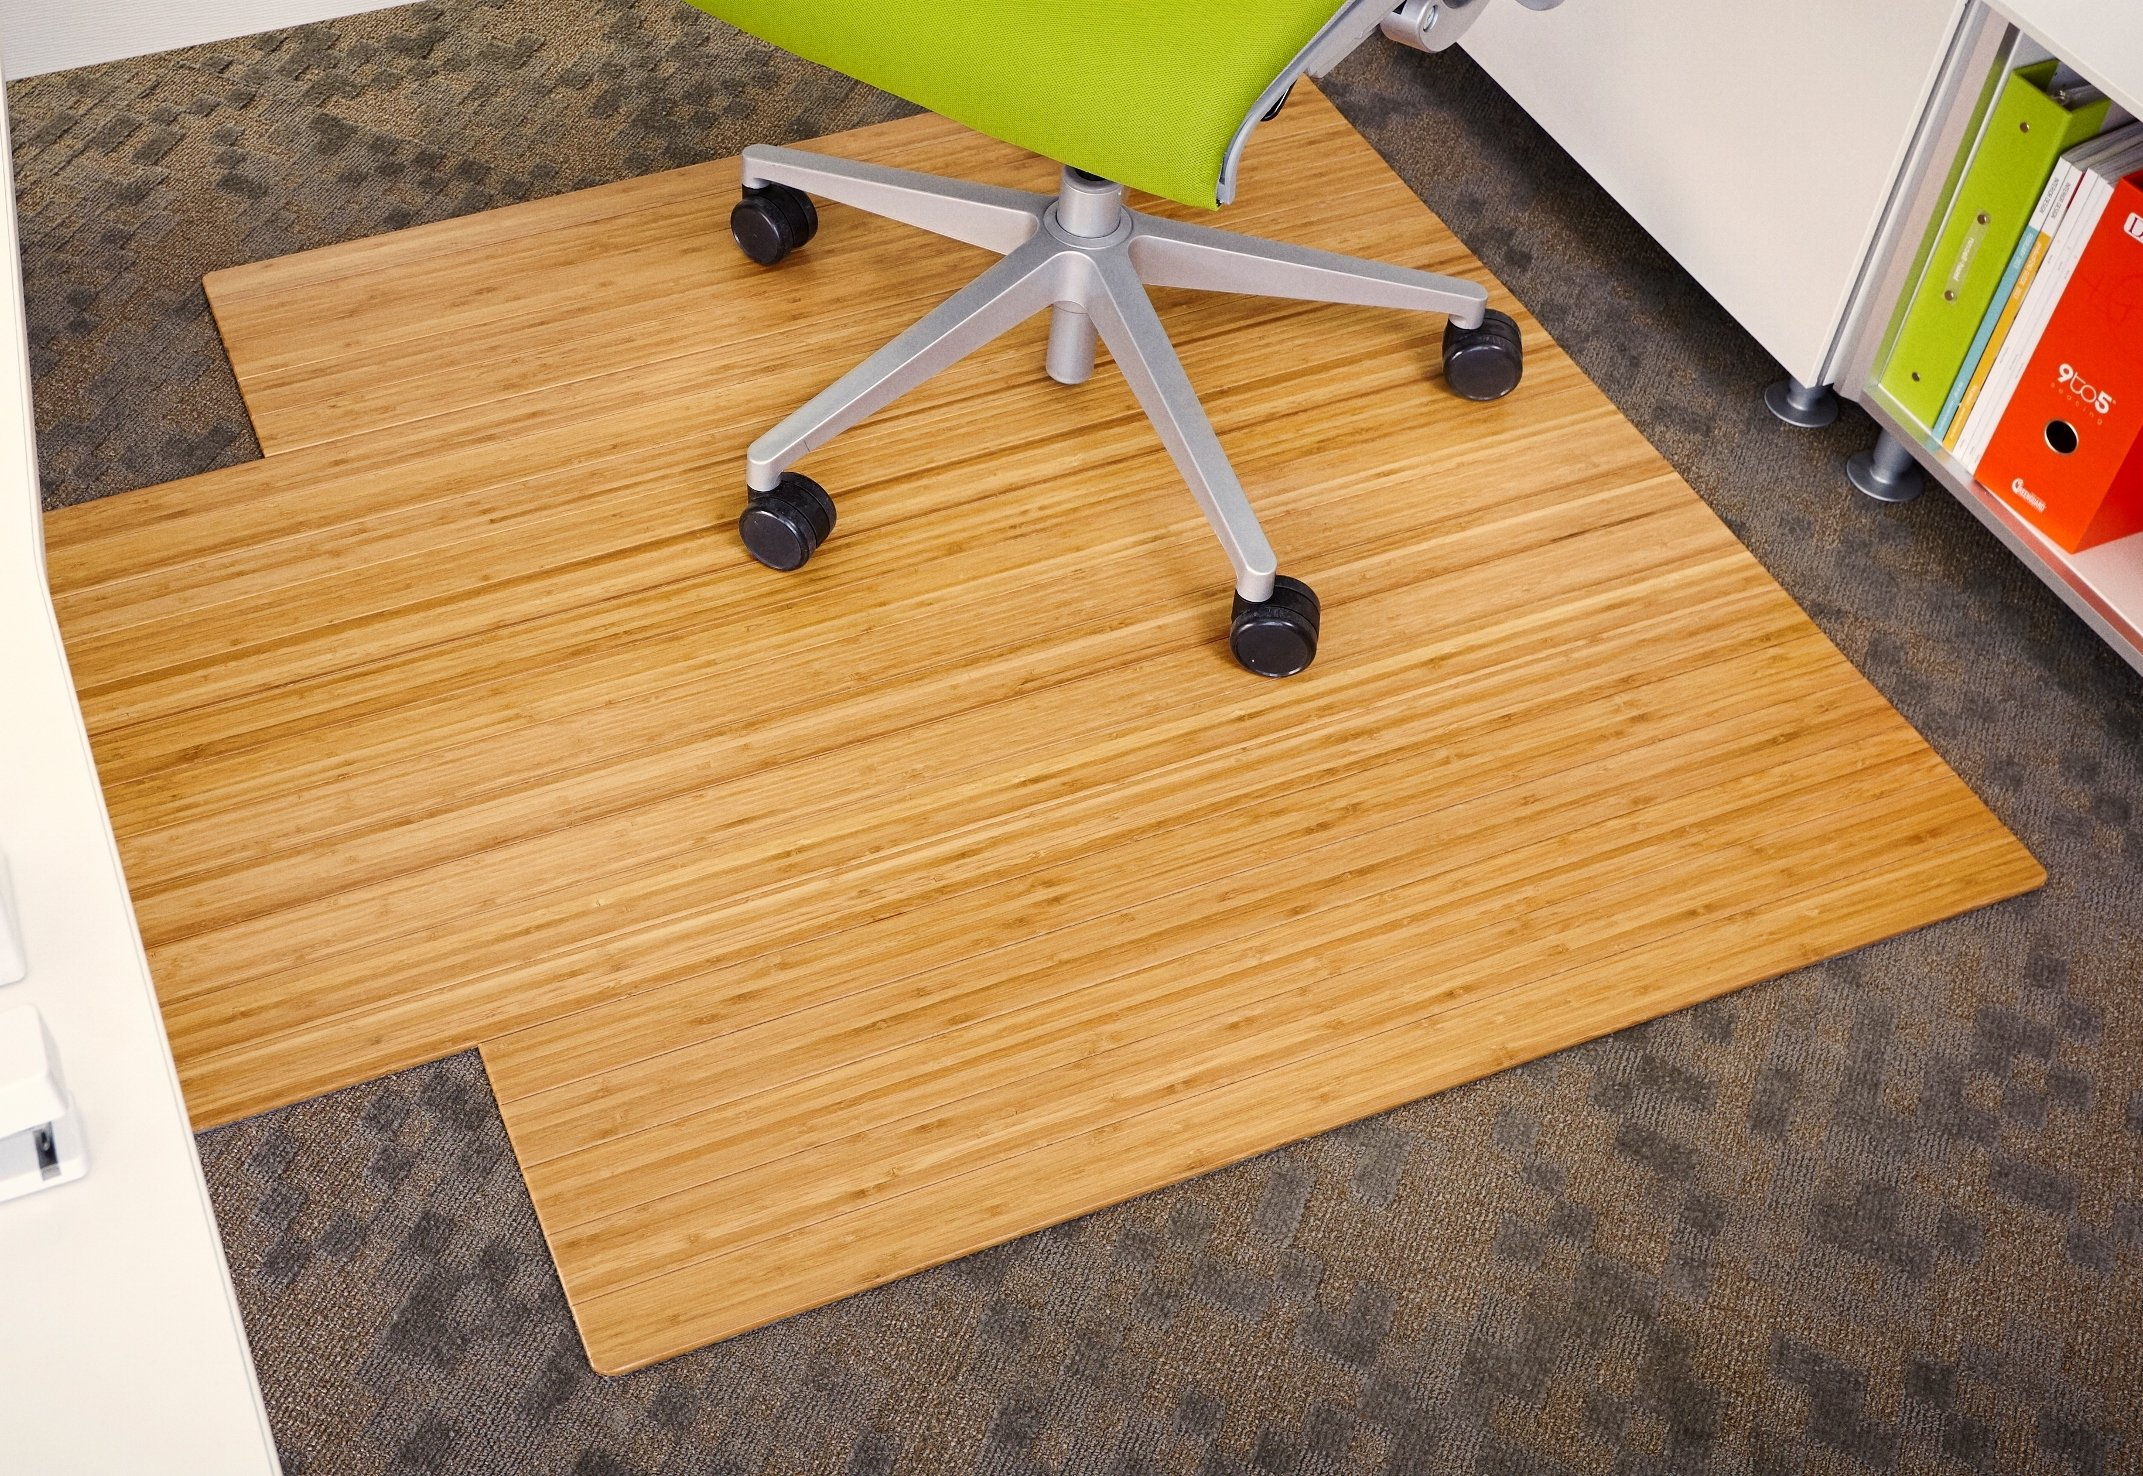 Anji Mountain AMB24005 Bamboo Roll-Up Chairmat with Lip, Natural, 44 x 52-Inch